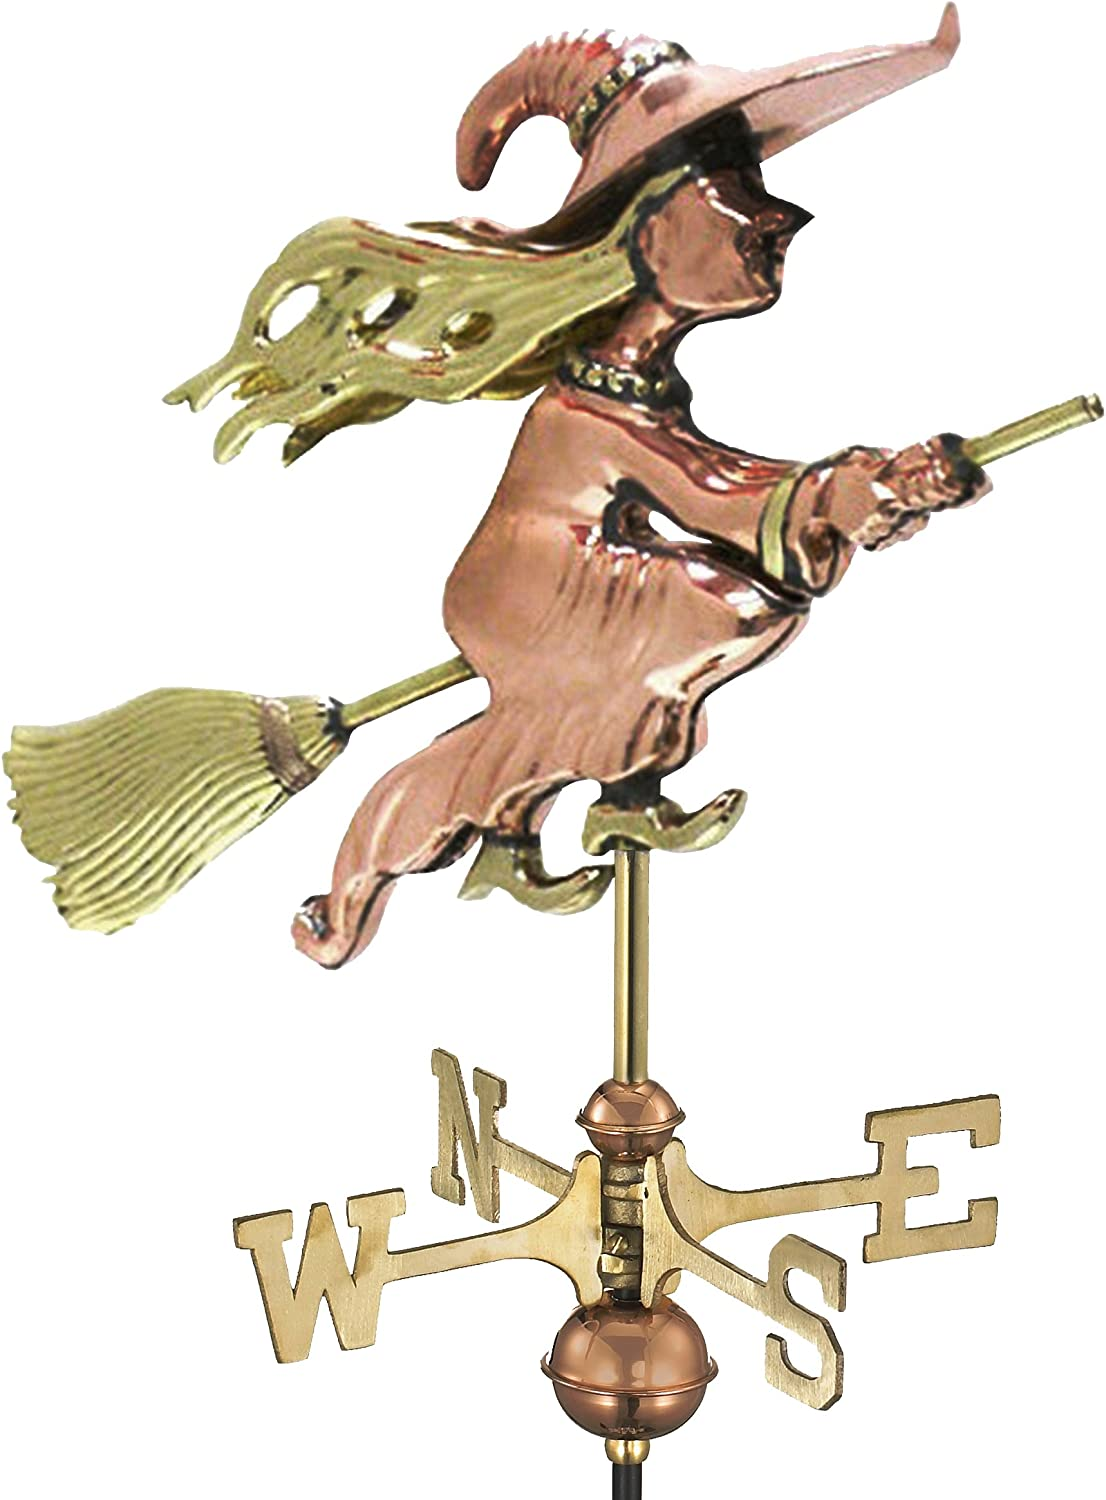 IKevan/_ Cast Iron Witch Weather Vanes Ornament for Roofs Roof Mount Steel Windblown Flying Wicked Witch Wind Direction Indicator Weathervane Decorations Gift for Outdoor Farm Yard Garden